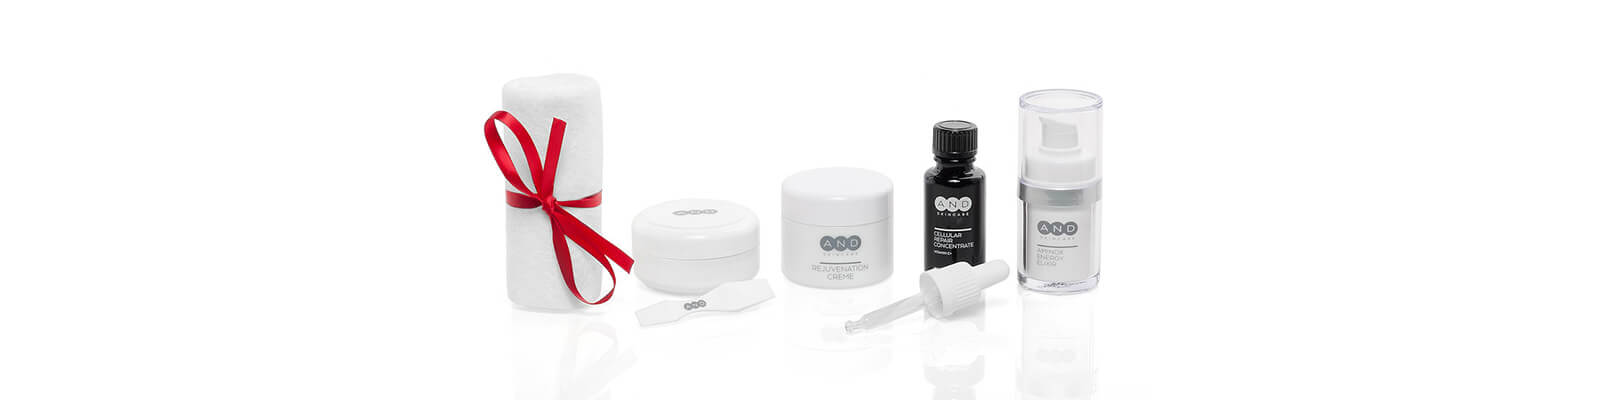 AND Skincare | Kosmetikstudio Egerer